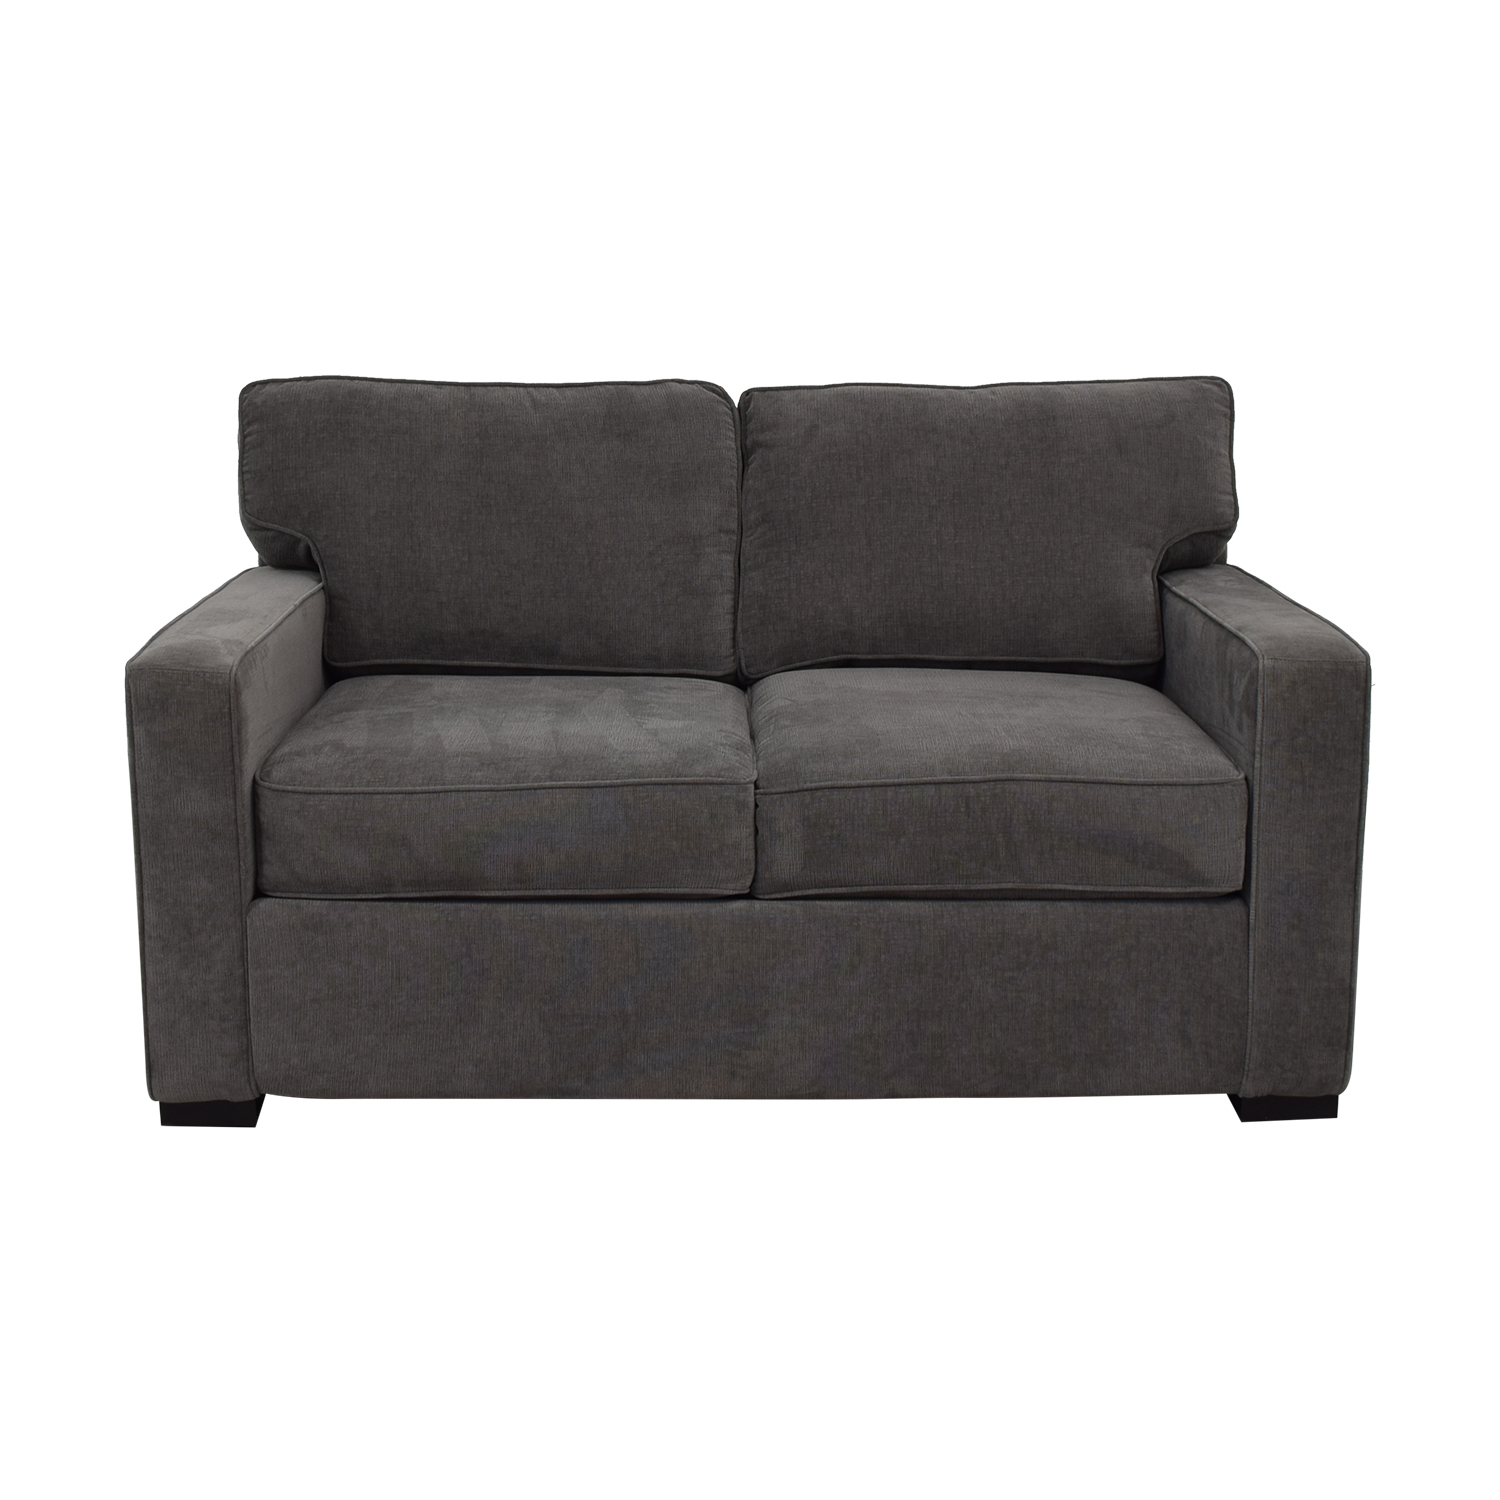 buy Macy's Grey Radley Loveseat Macy's Loveseats